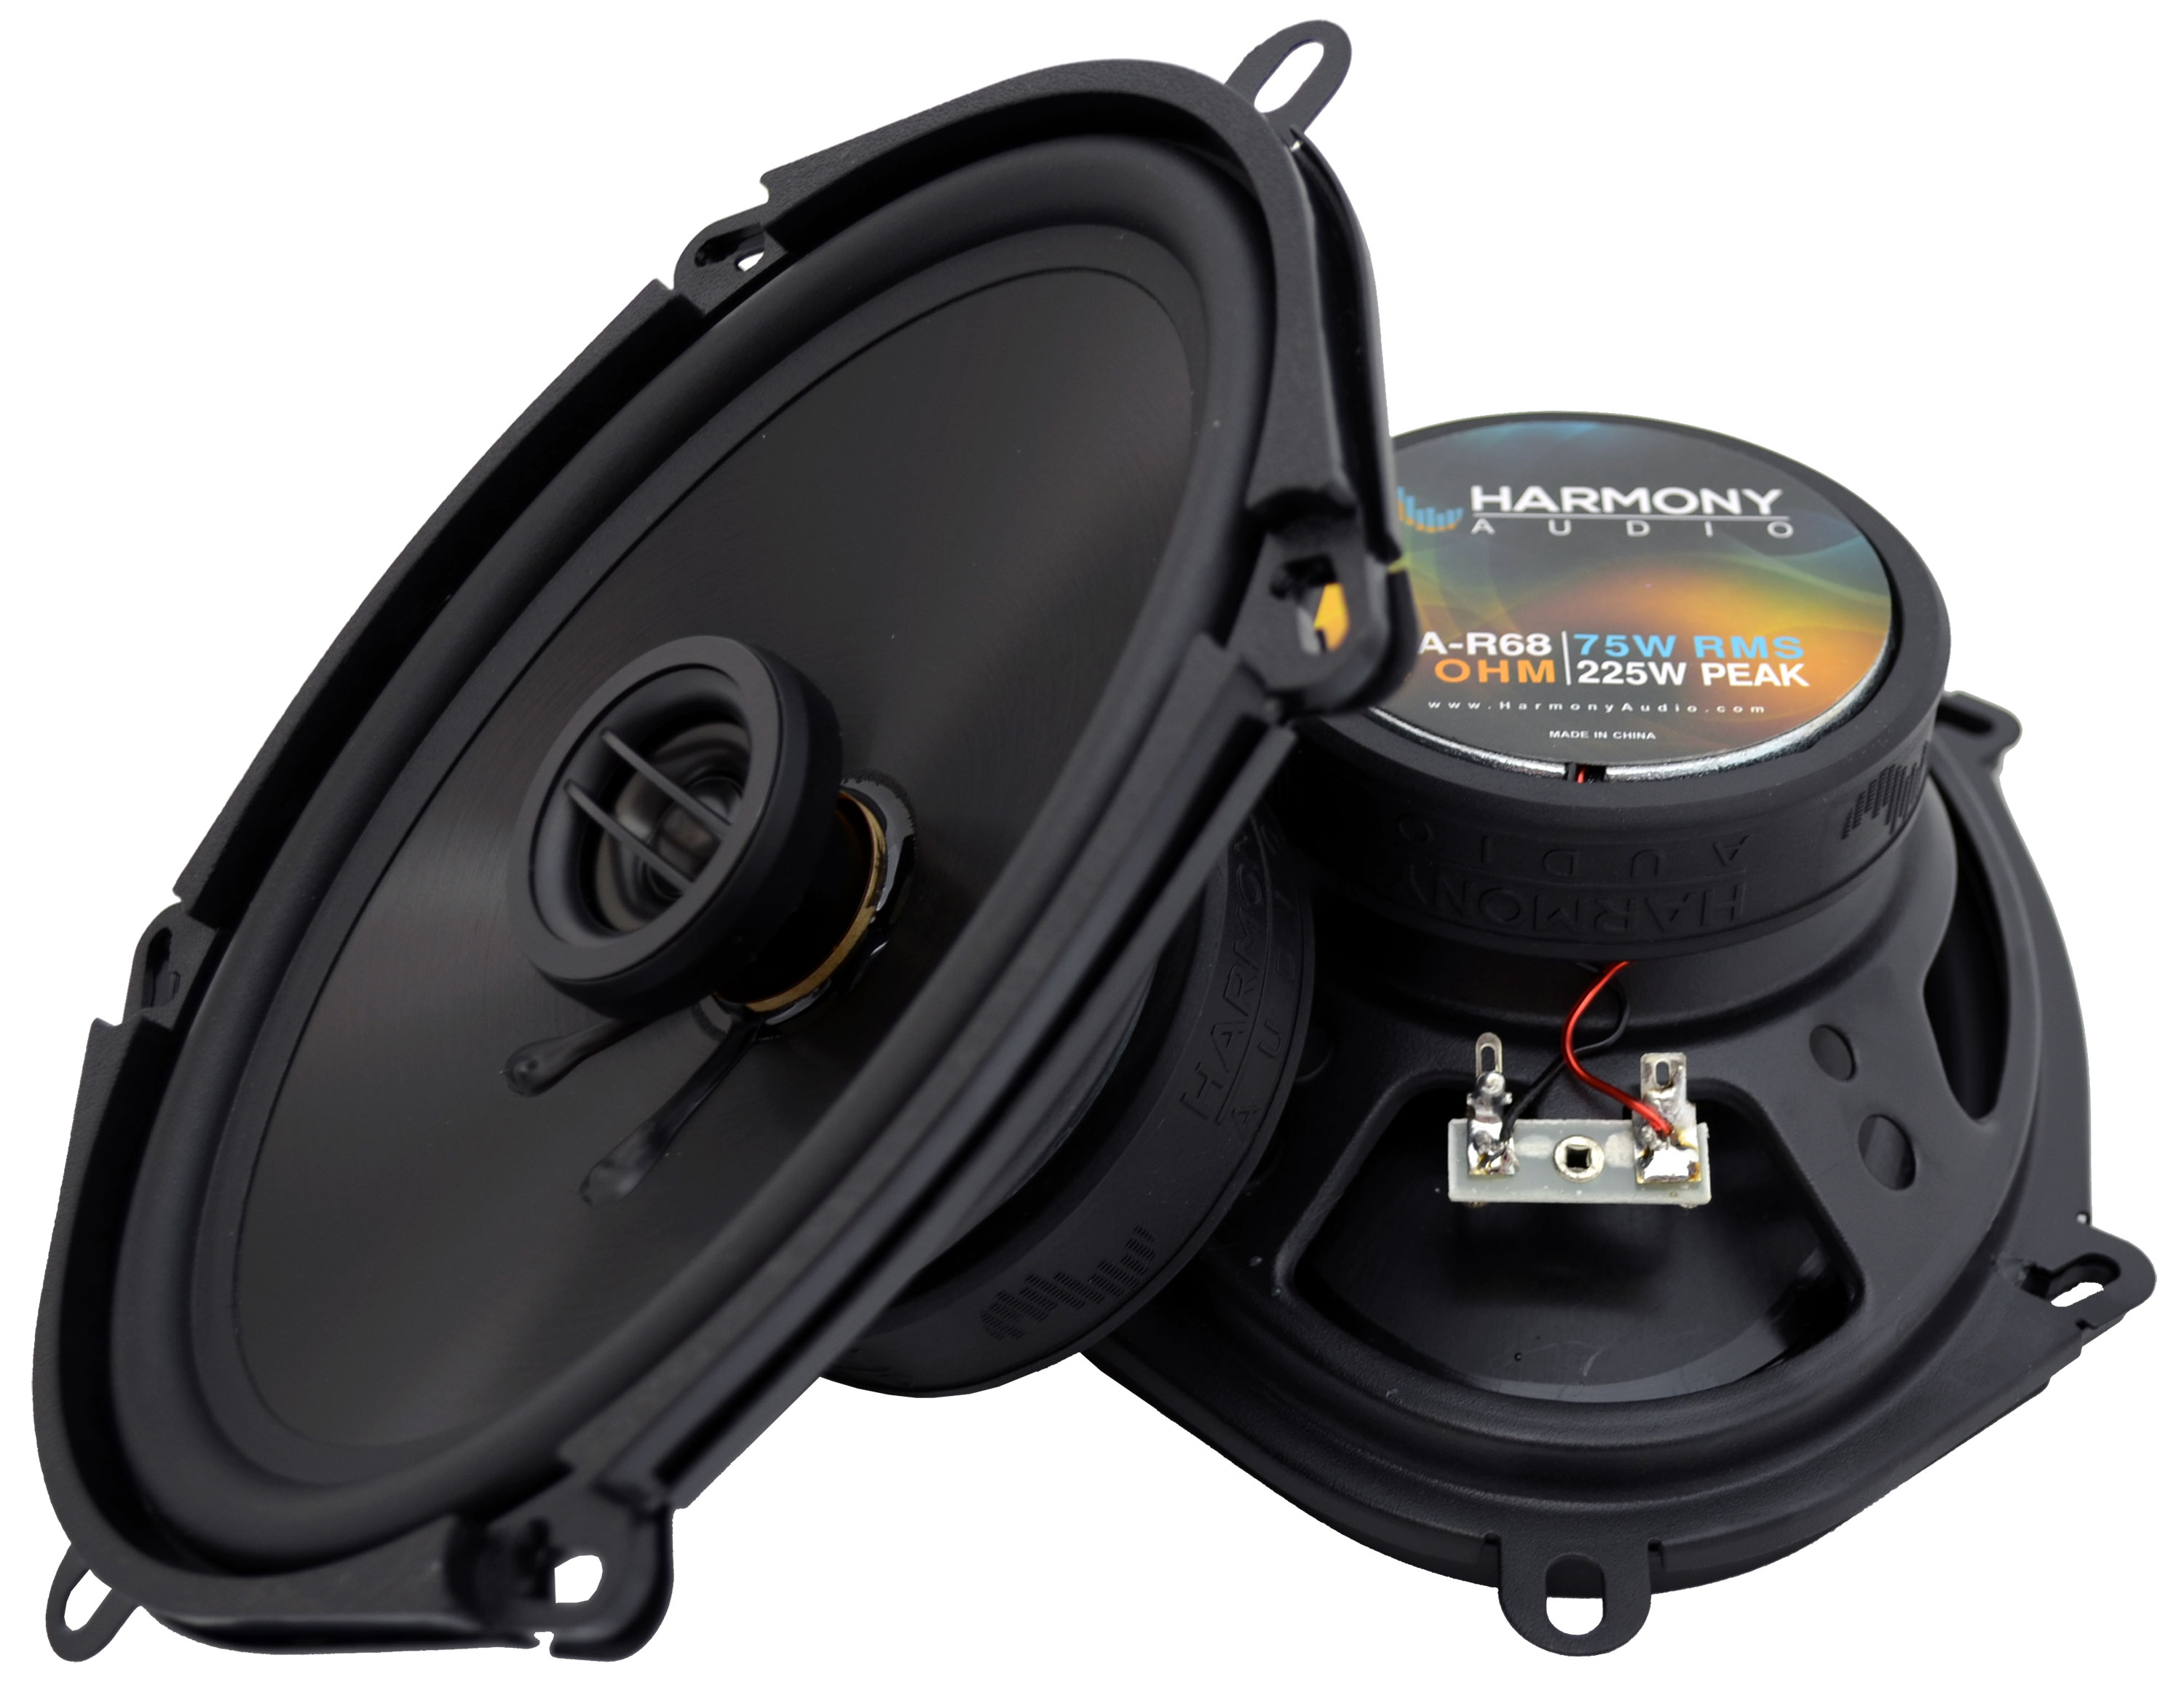 Fits Ford Taurus X 2008-2009 Rear Deck Replacement Harmony HA-R68 Speakers New